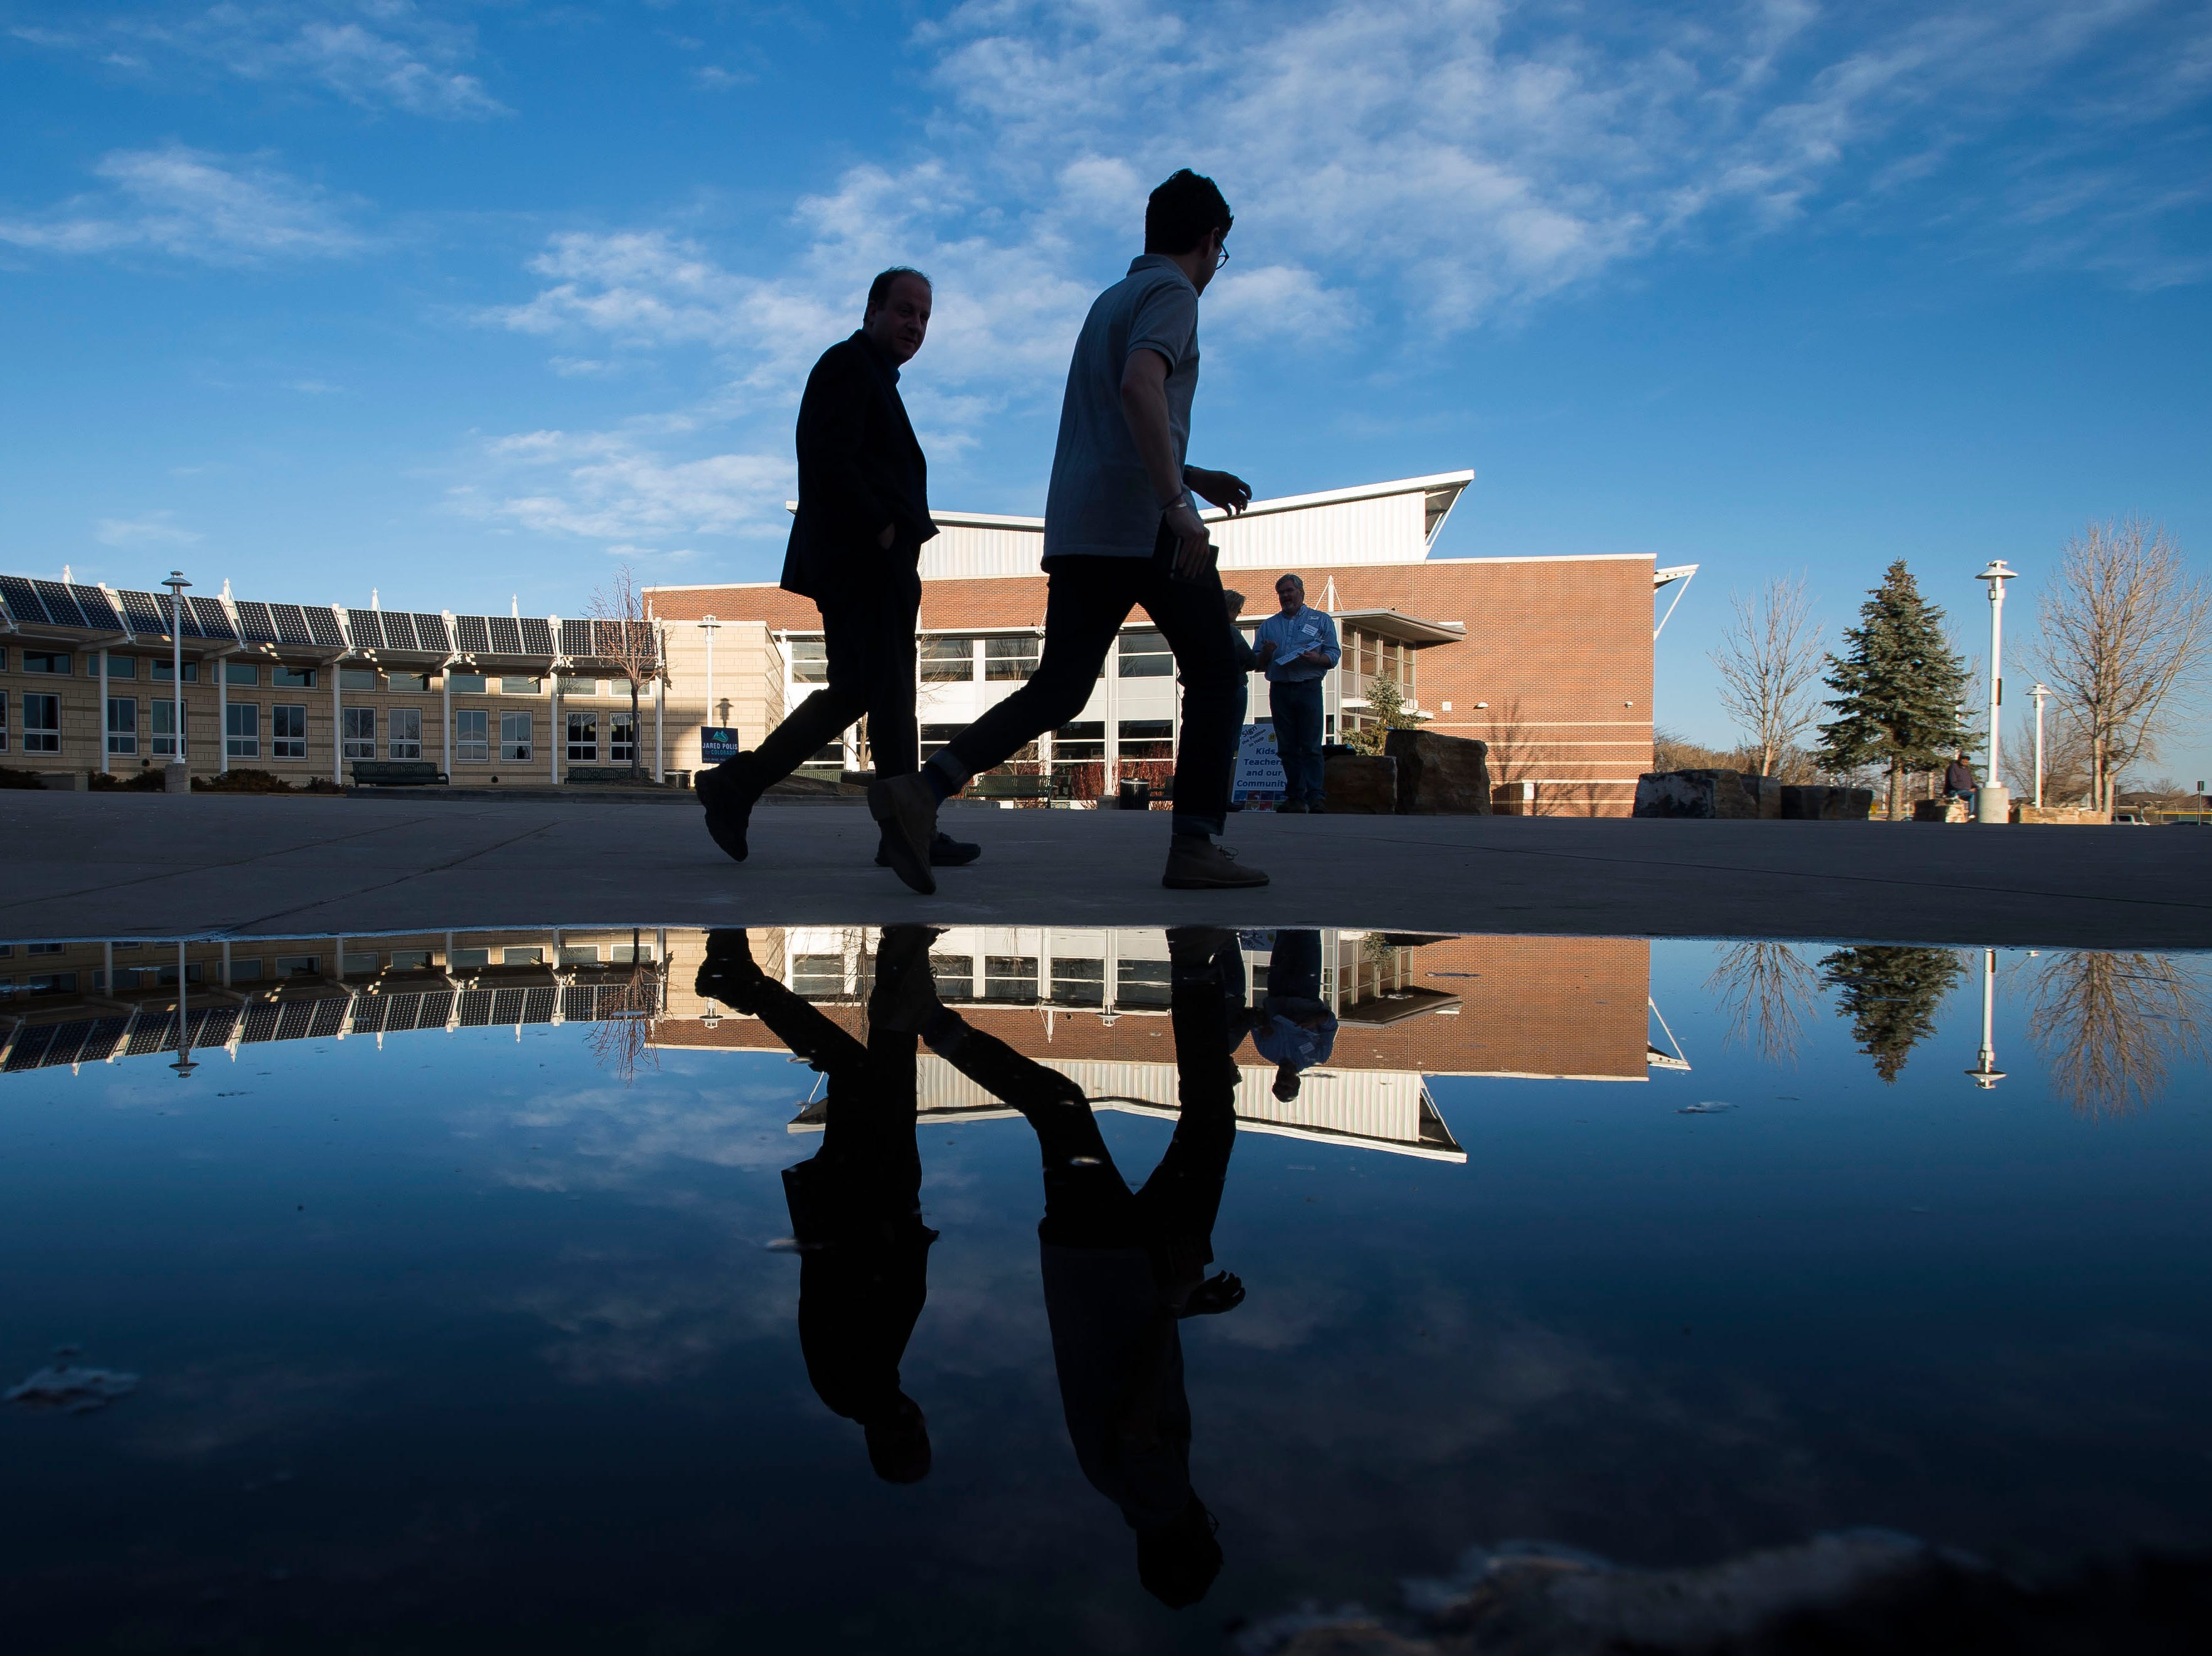 Colorado gubernatorial candidate Jared Polis, left, and his press secretary Eli Rosen head to the parking lot on Saturday, March 3, 2018, after participating in a forum for gubernatorial candidates at Fossil Ridge High School in Fort Collins, Colo.